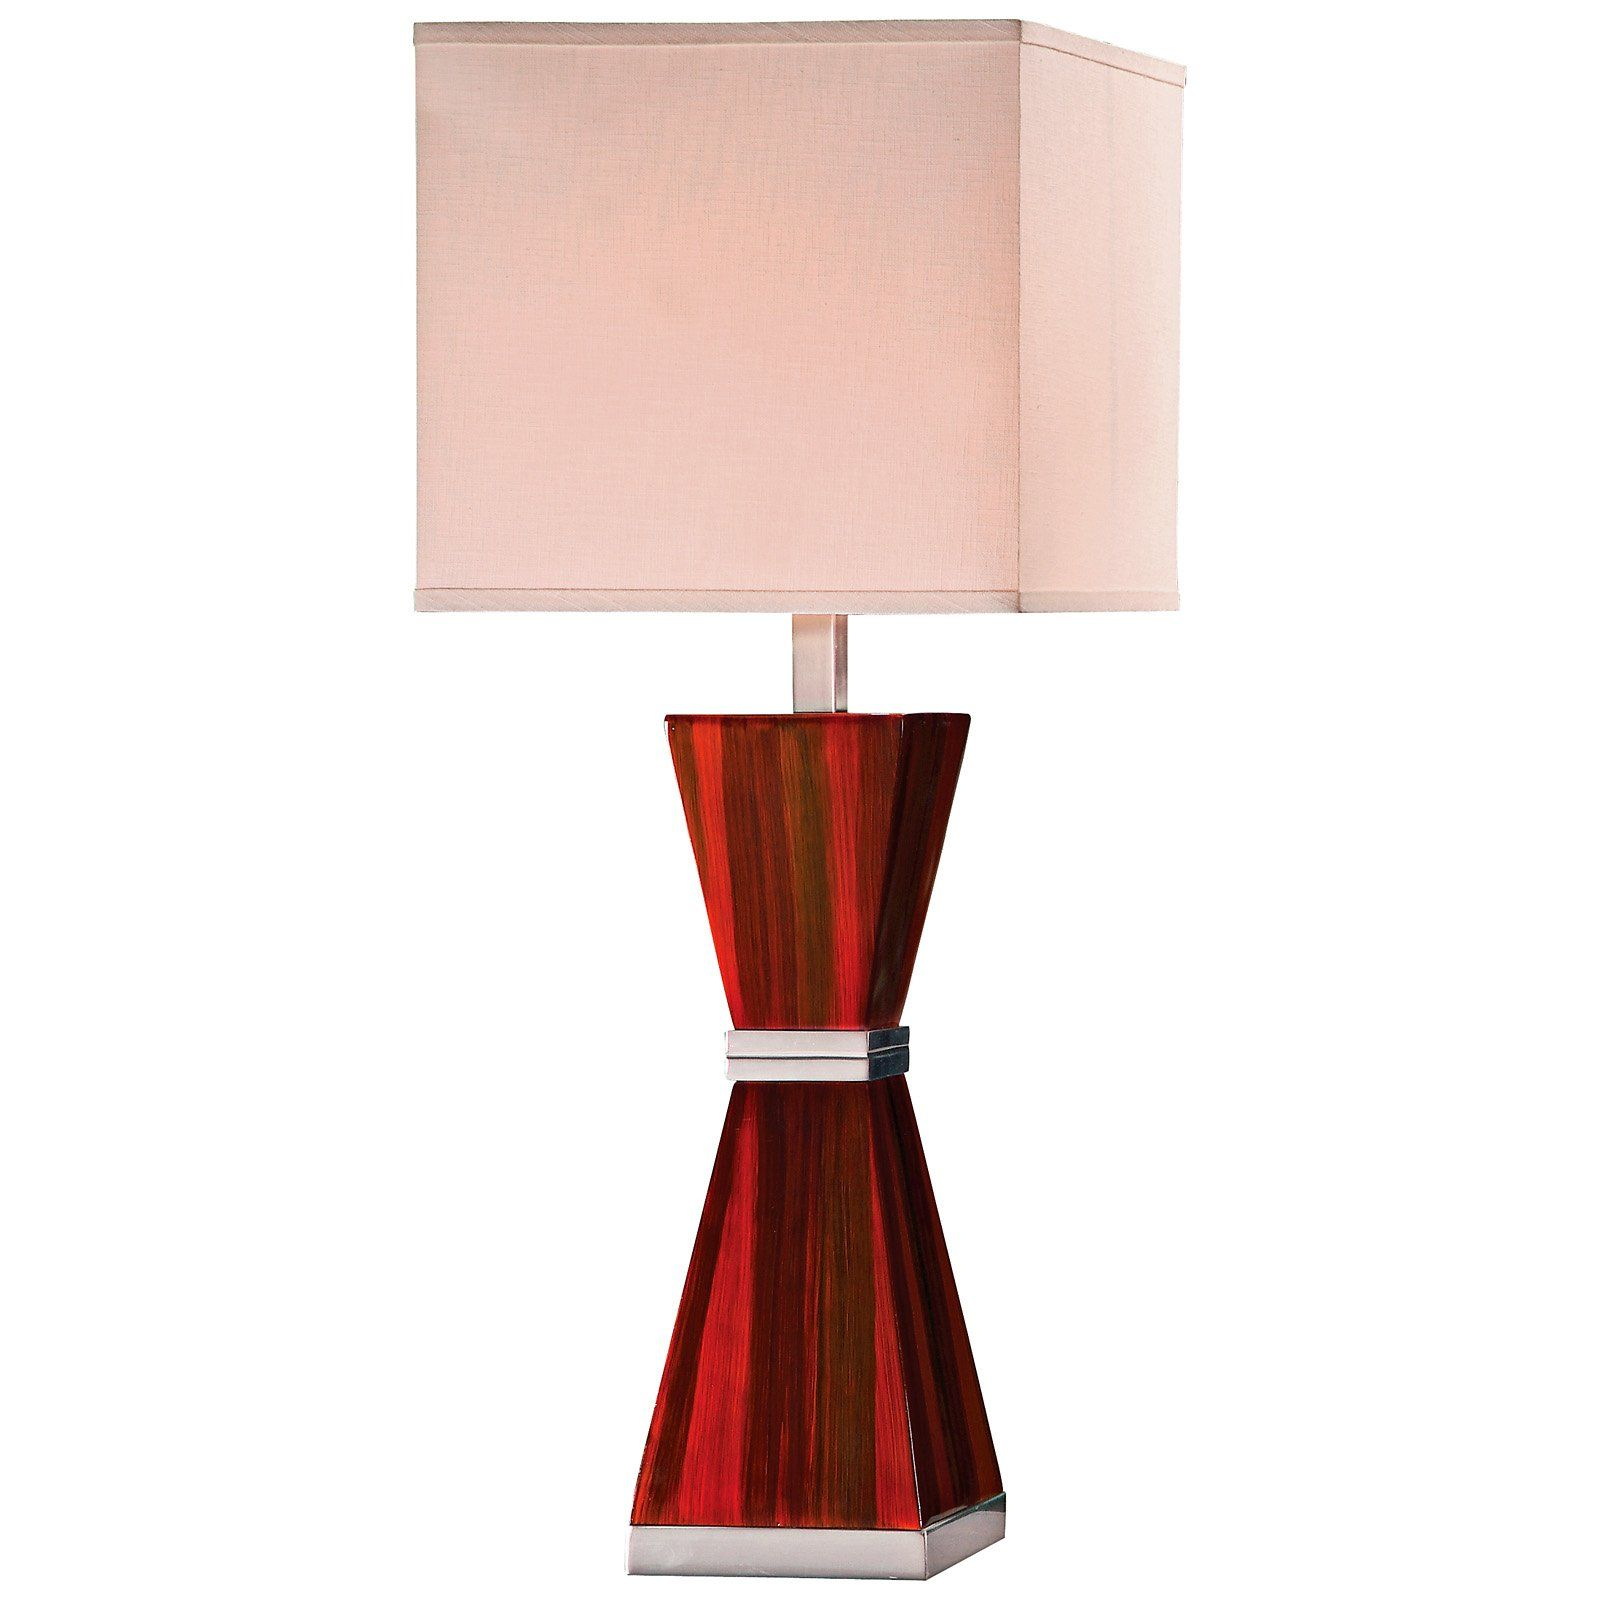 Sorrel P9630bng 123 Red Brown With Antique Silver Table Lamp For The Home Silver Table Lamps Silver Table Table Lamp